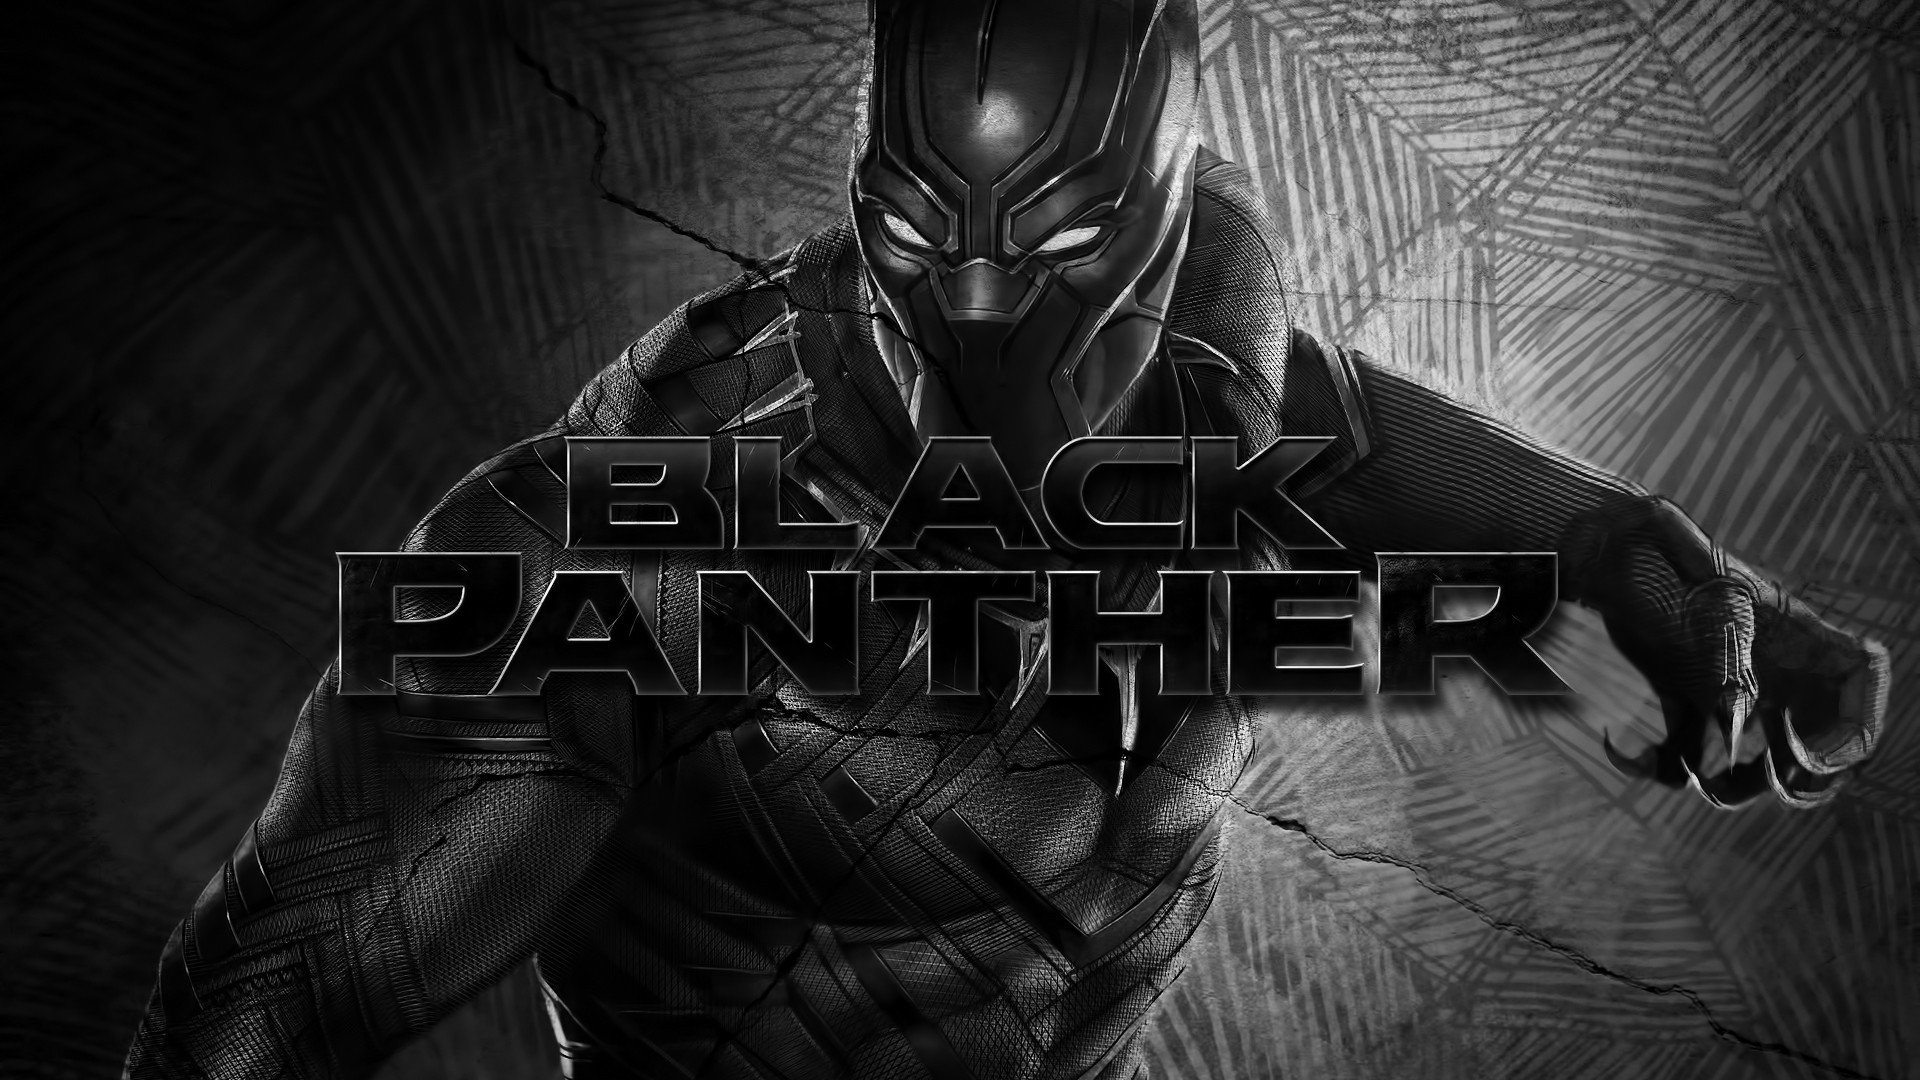 Black Panther Wallpapers Hd Desktop And Mobile Backgrounds